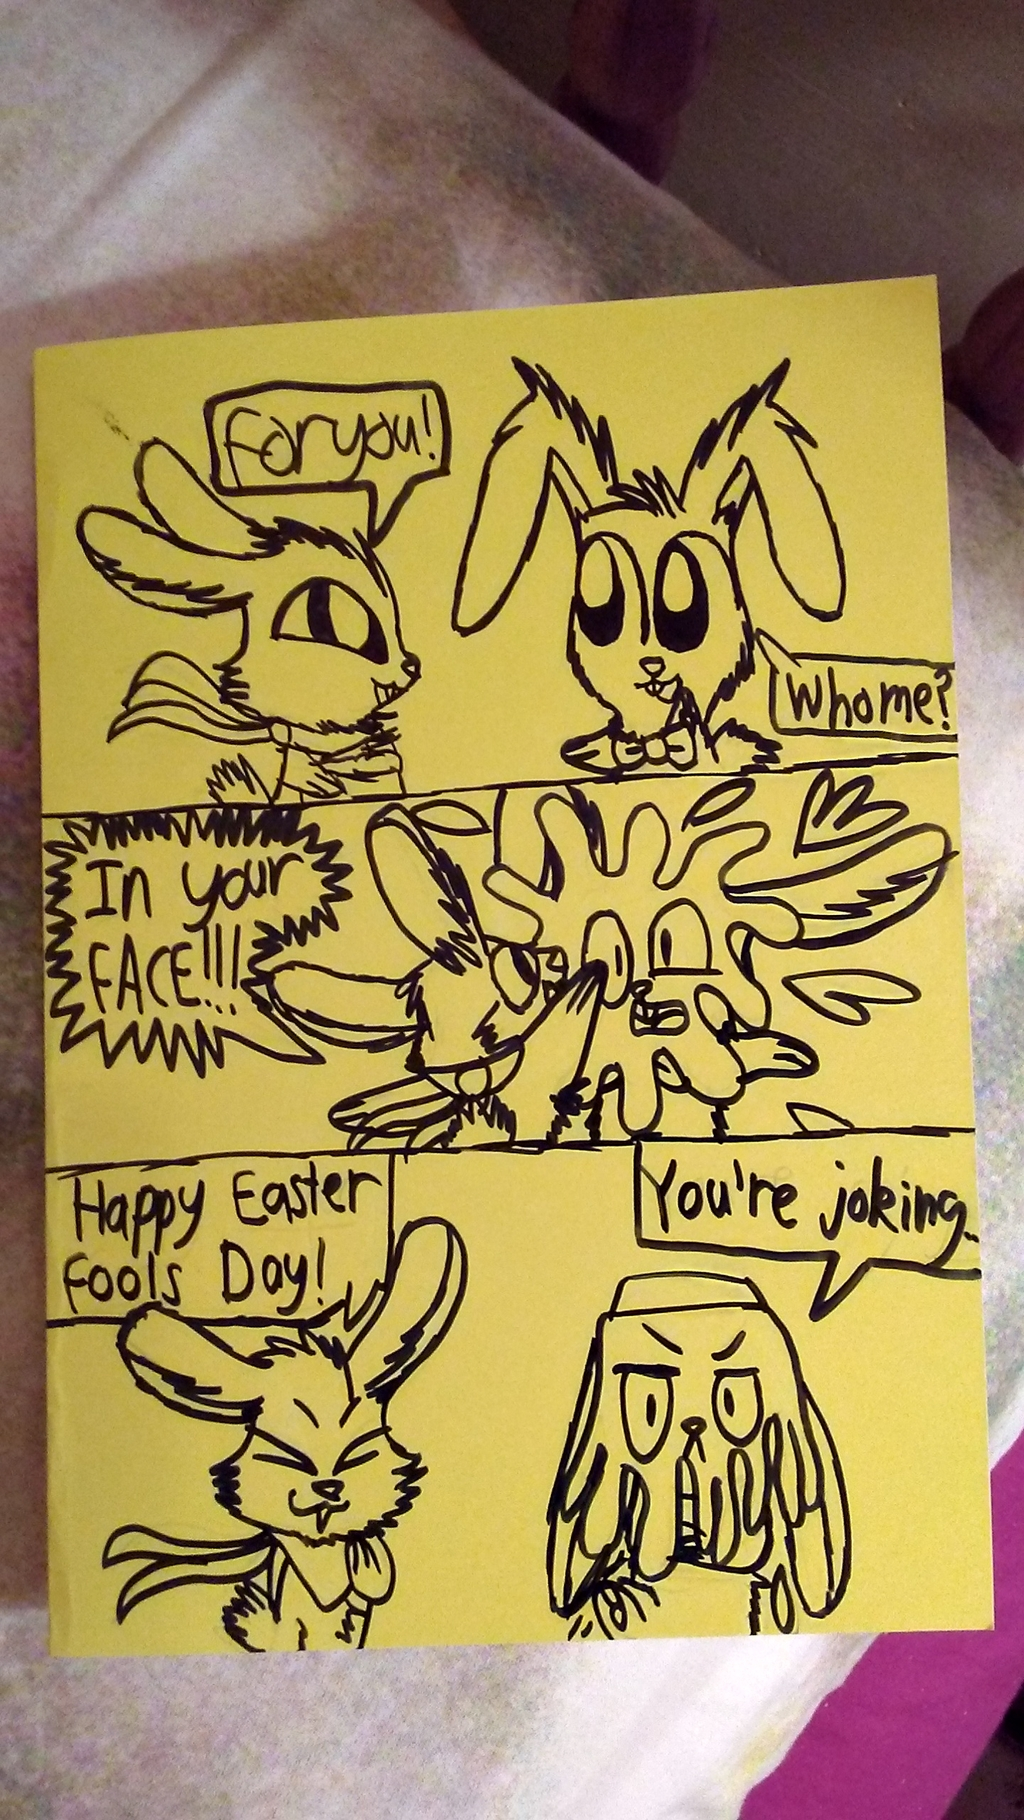 Easter Fools! [Old Comic]